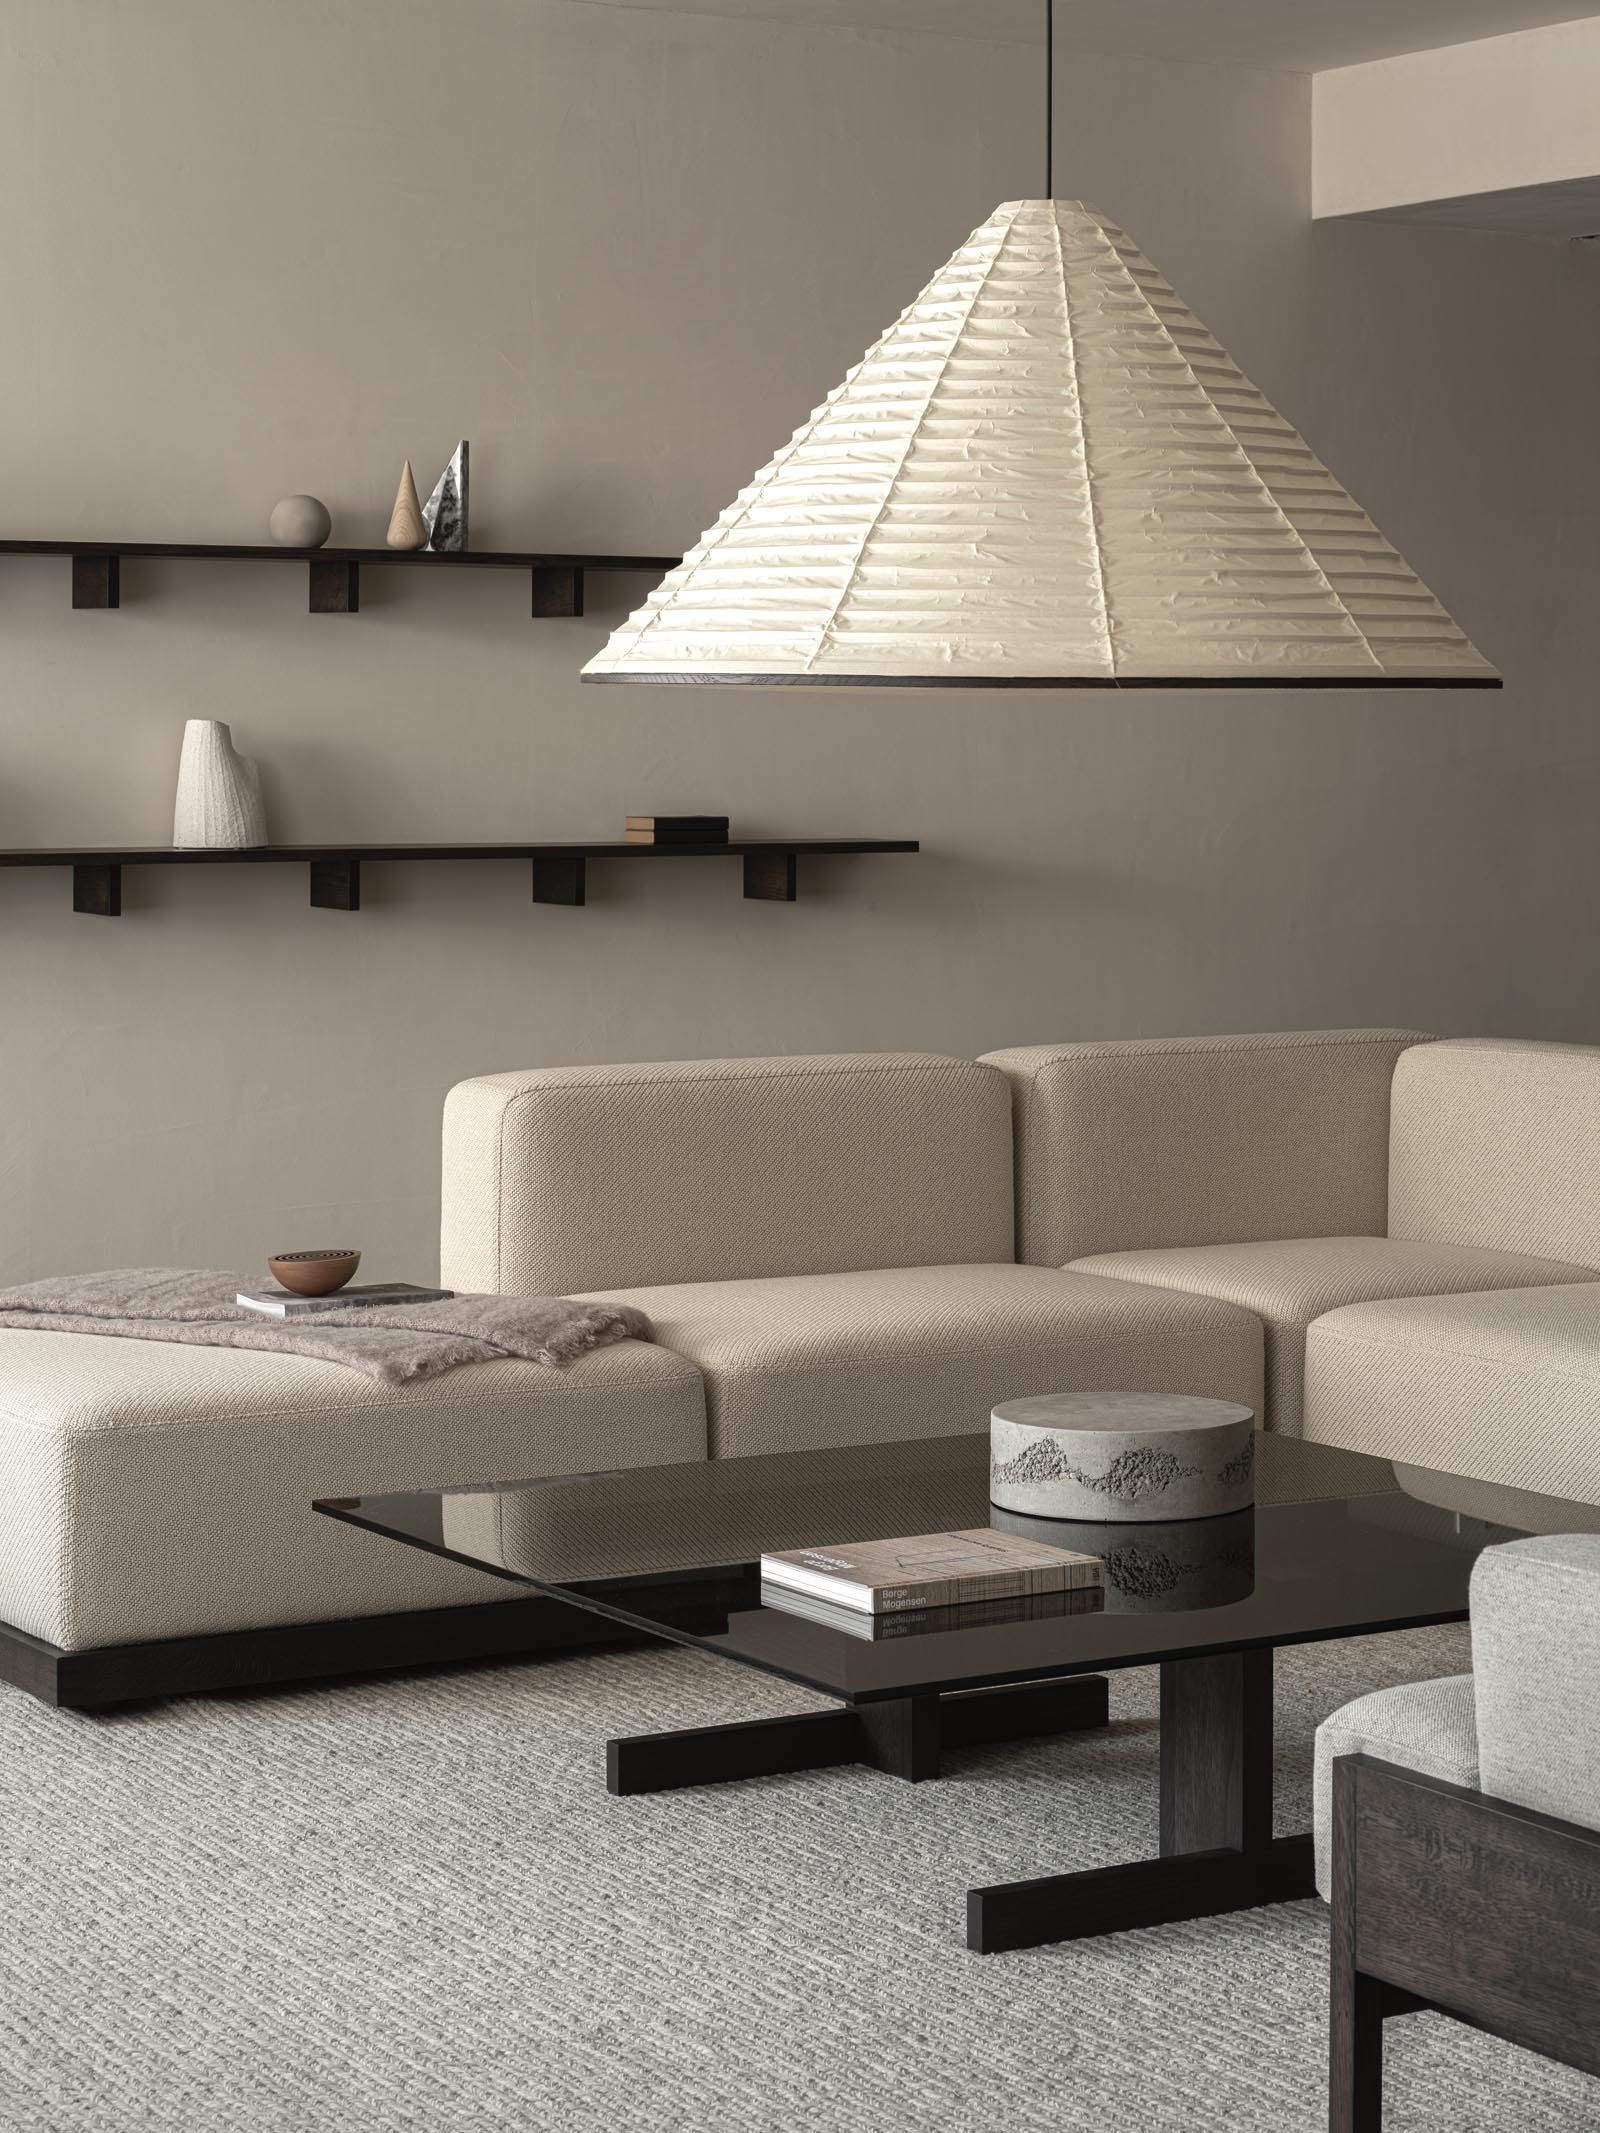 Minimalist Japandi living room in neutral earthy tones | These Four Walls blog